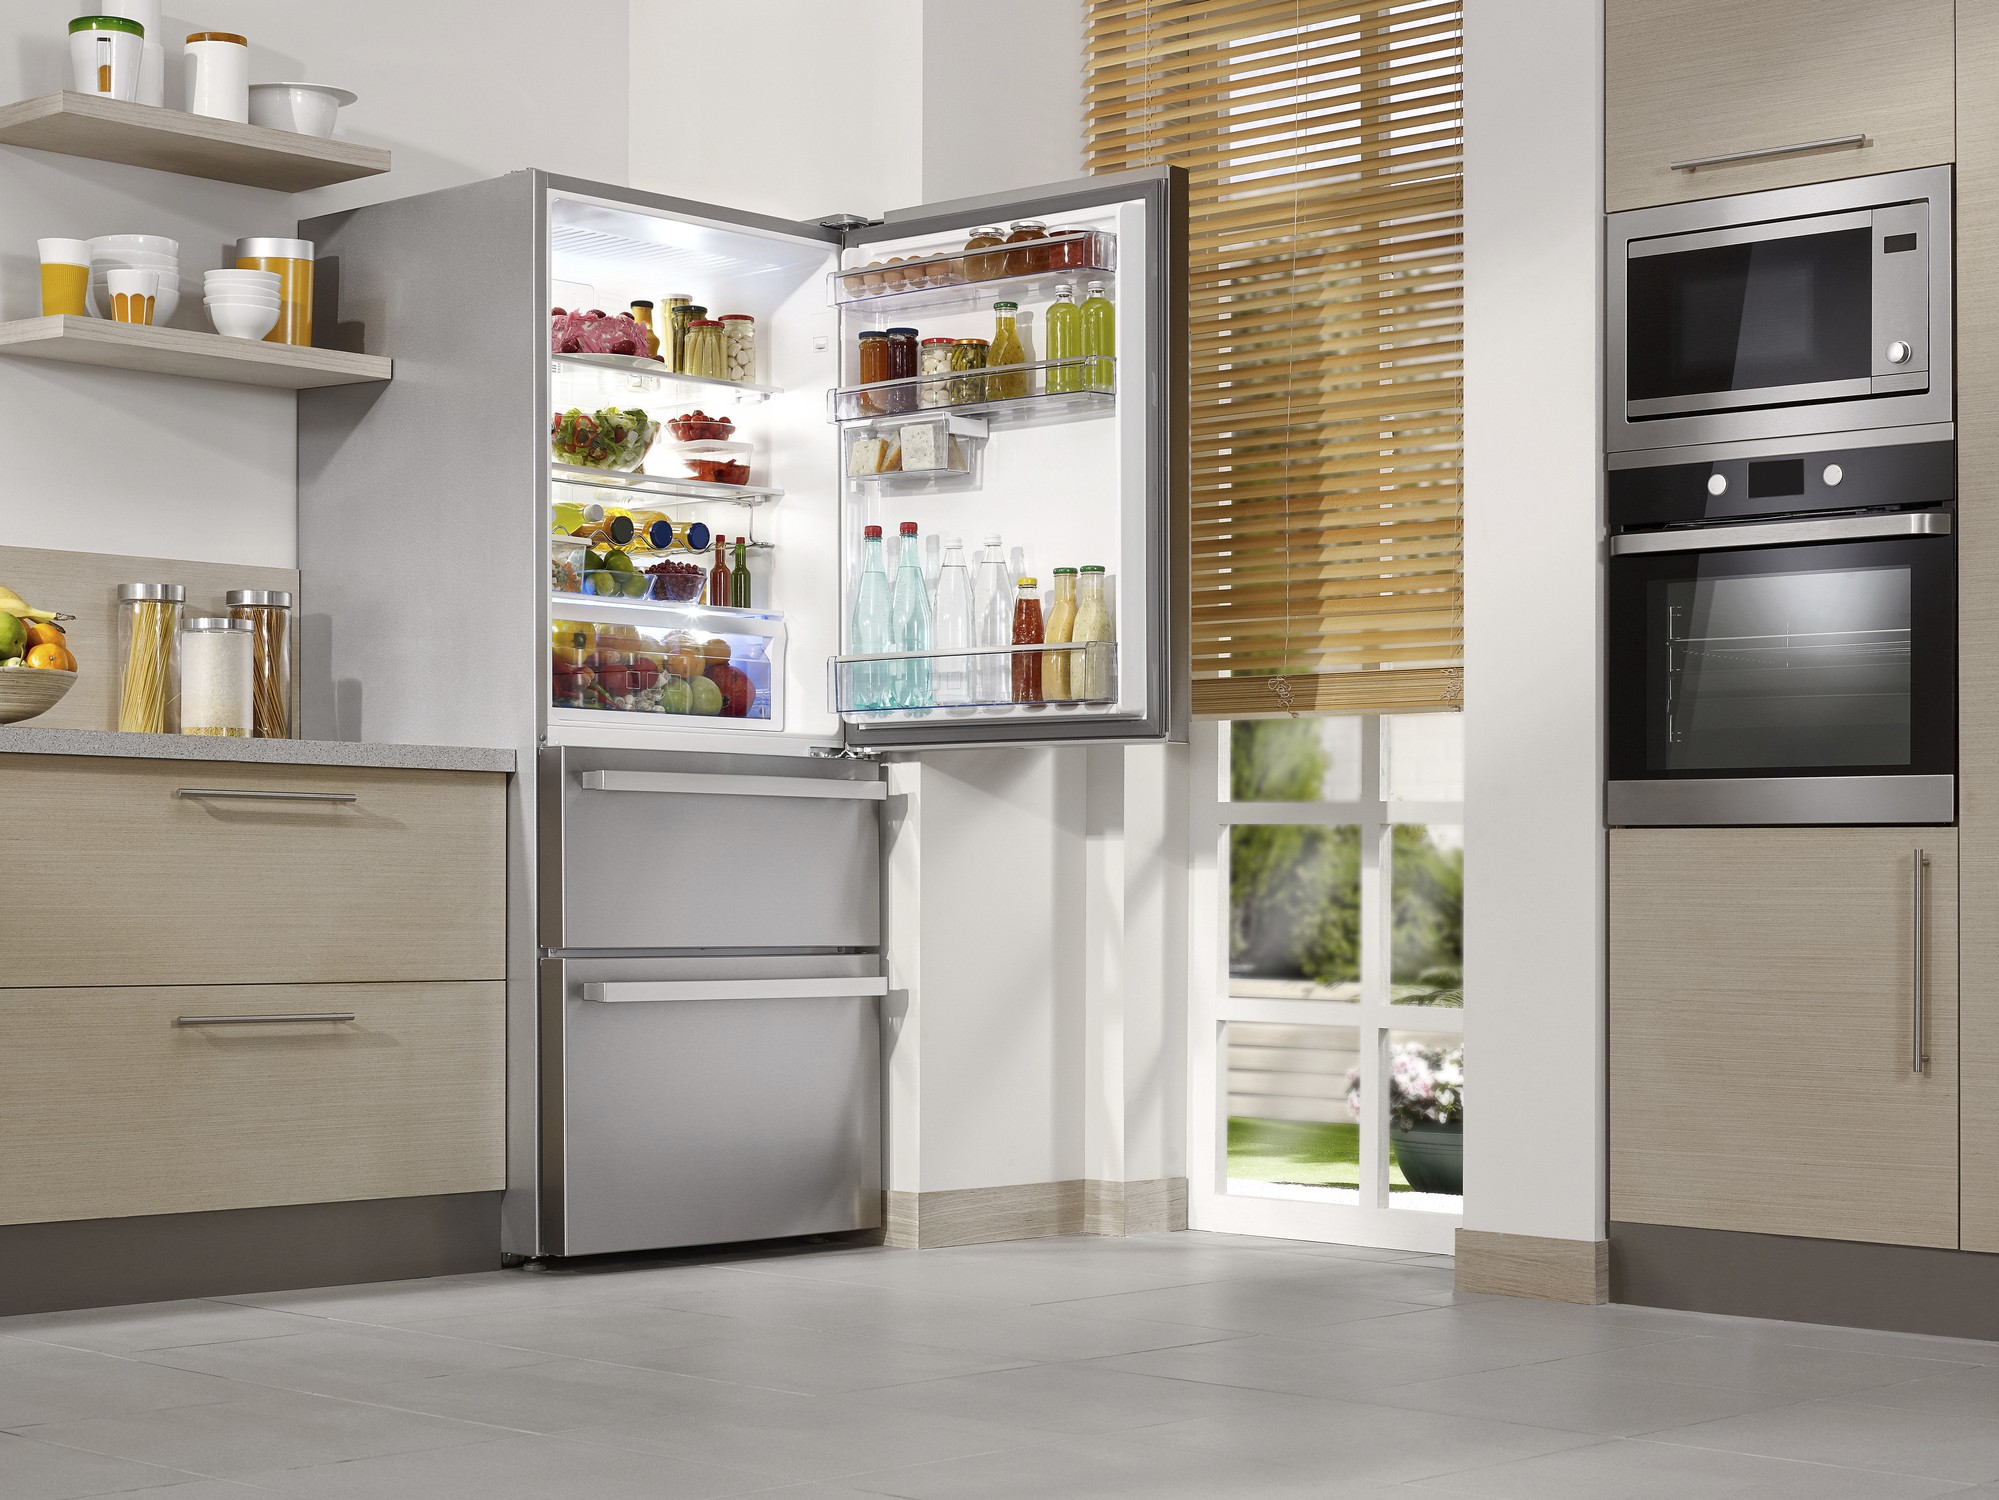 Modern kitchens with impressive refrigerators, ovens and steamers: new electrical appliances are generally more energy-efficient, but in many cases, the appliances purchased are more numerous, larger and are used more intensively, which means that part of the energy savings are lost.